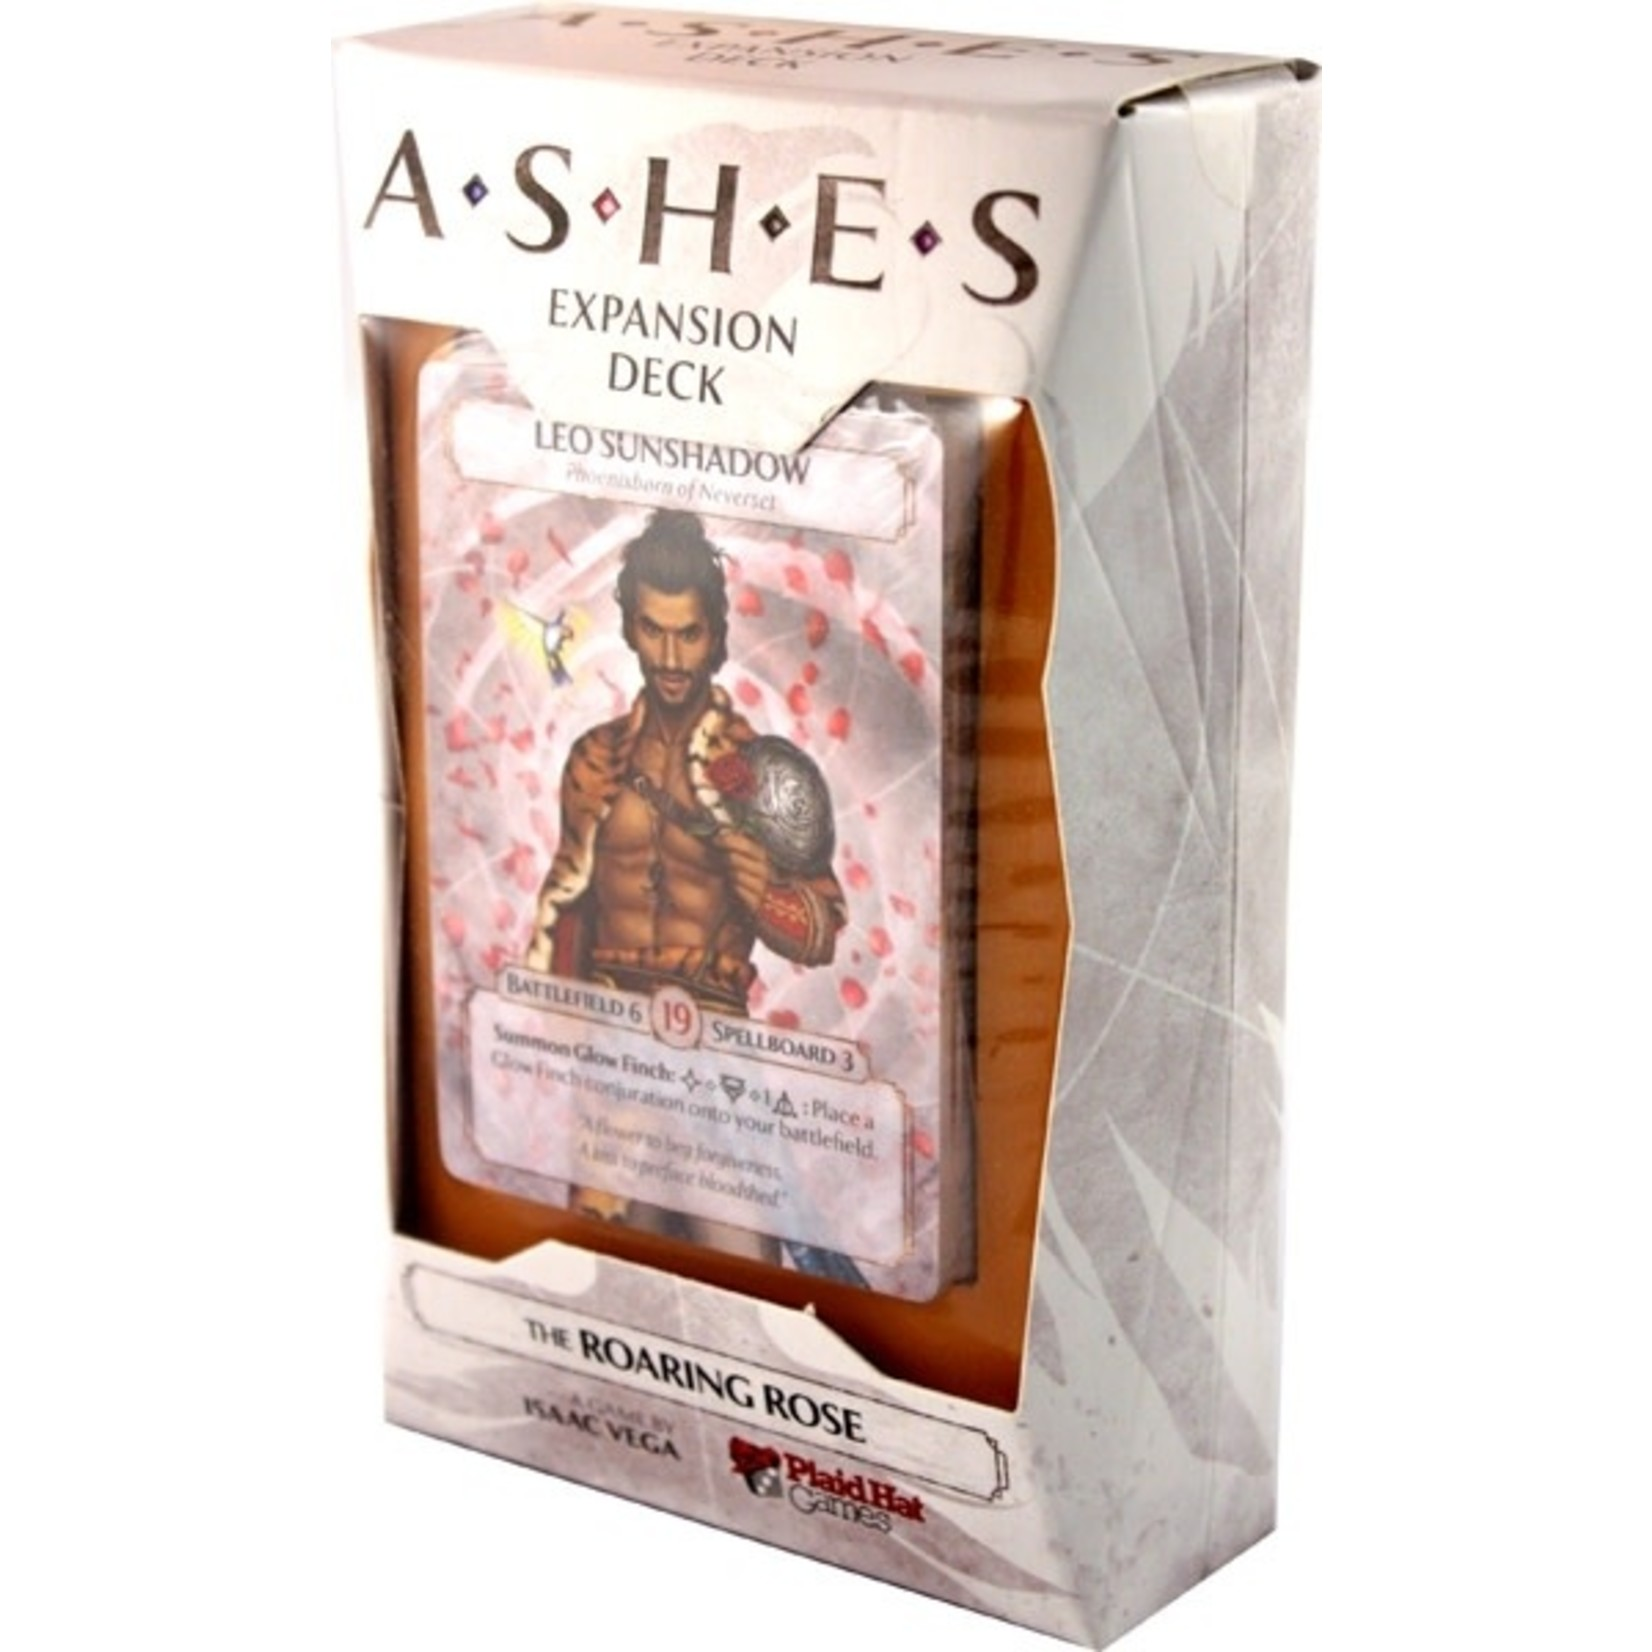 Ashes Expansion Deck: The Roaring Roses